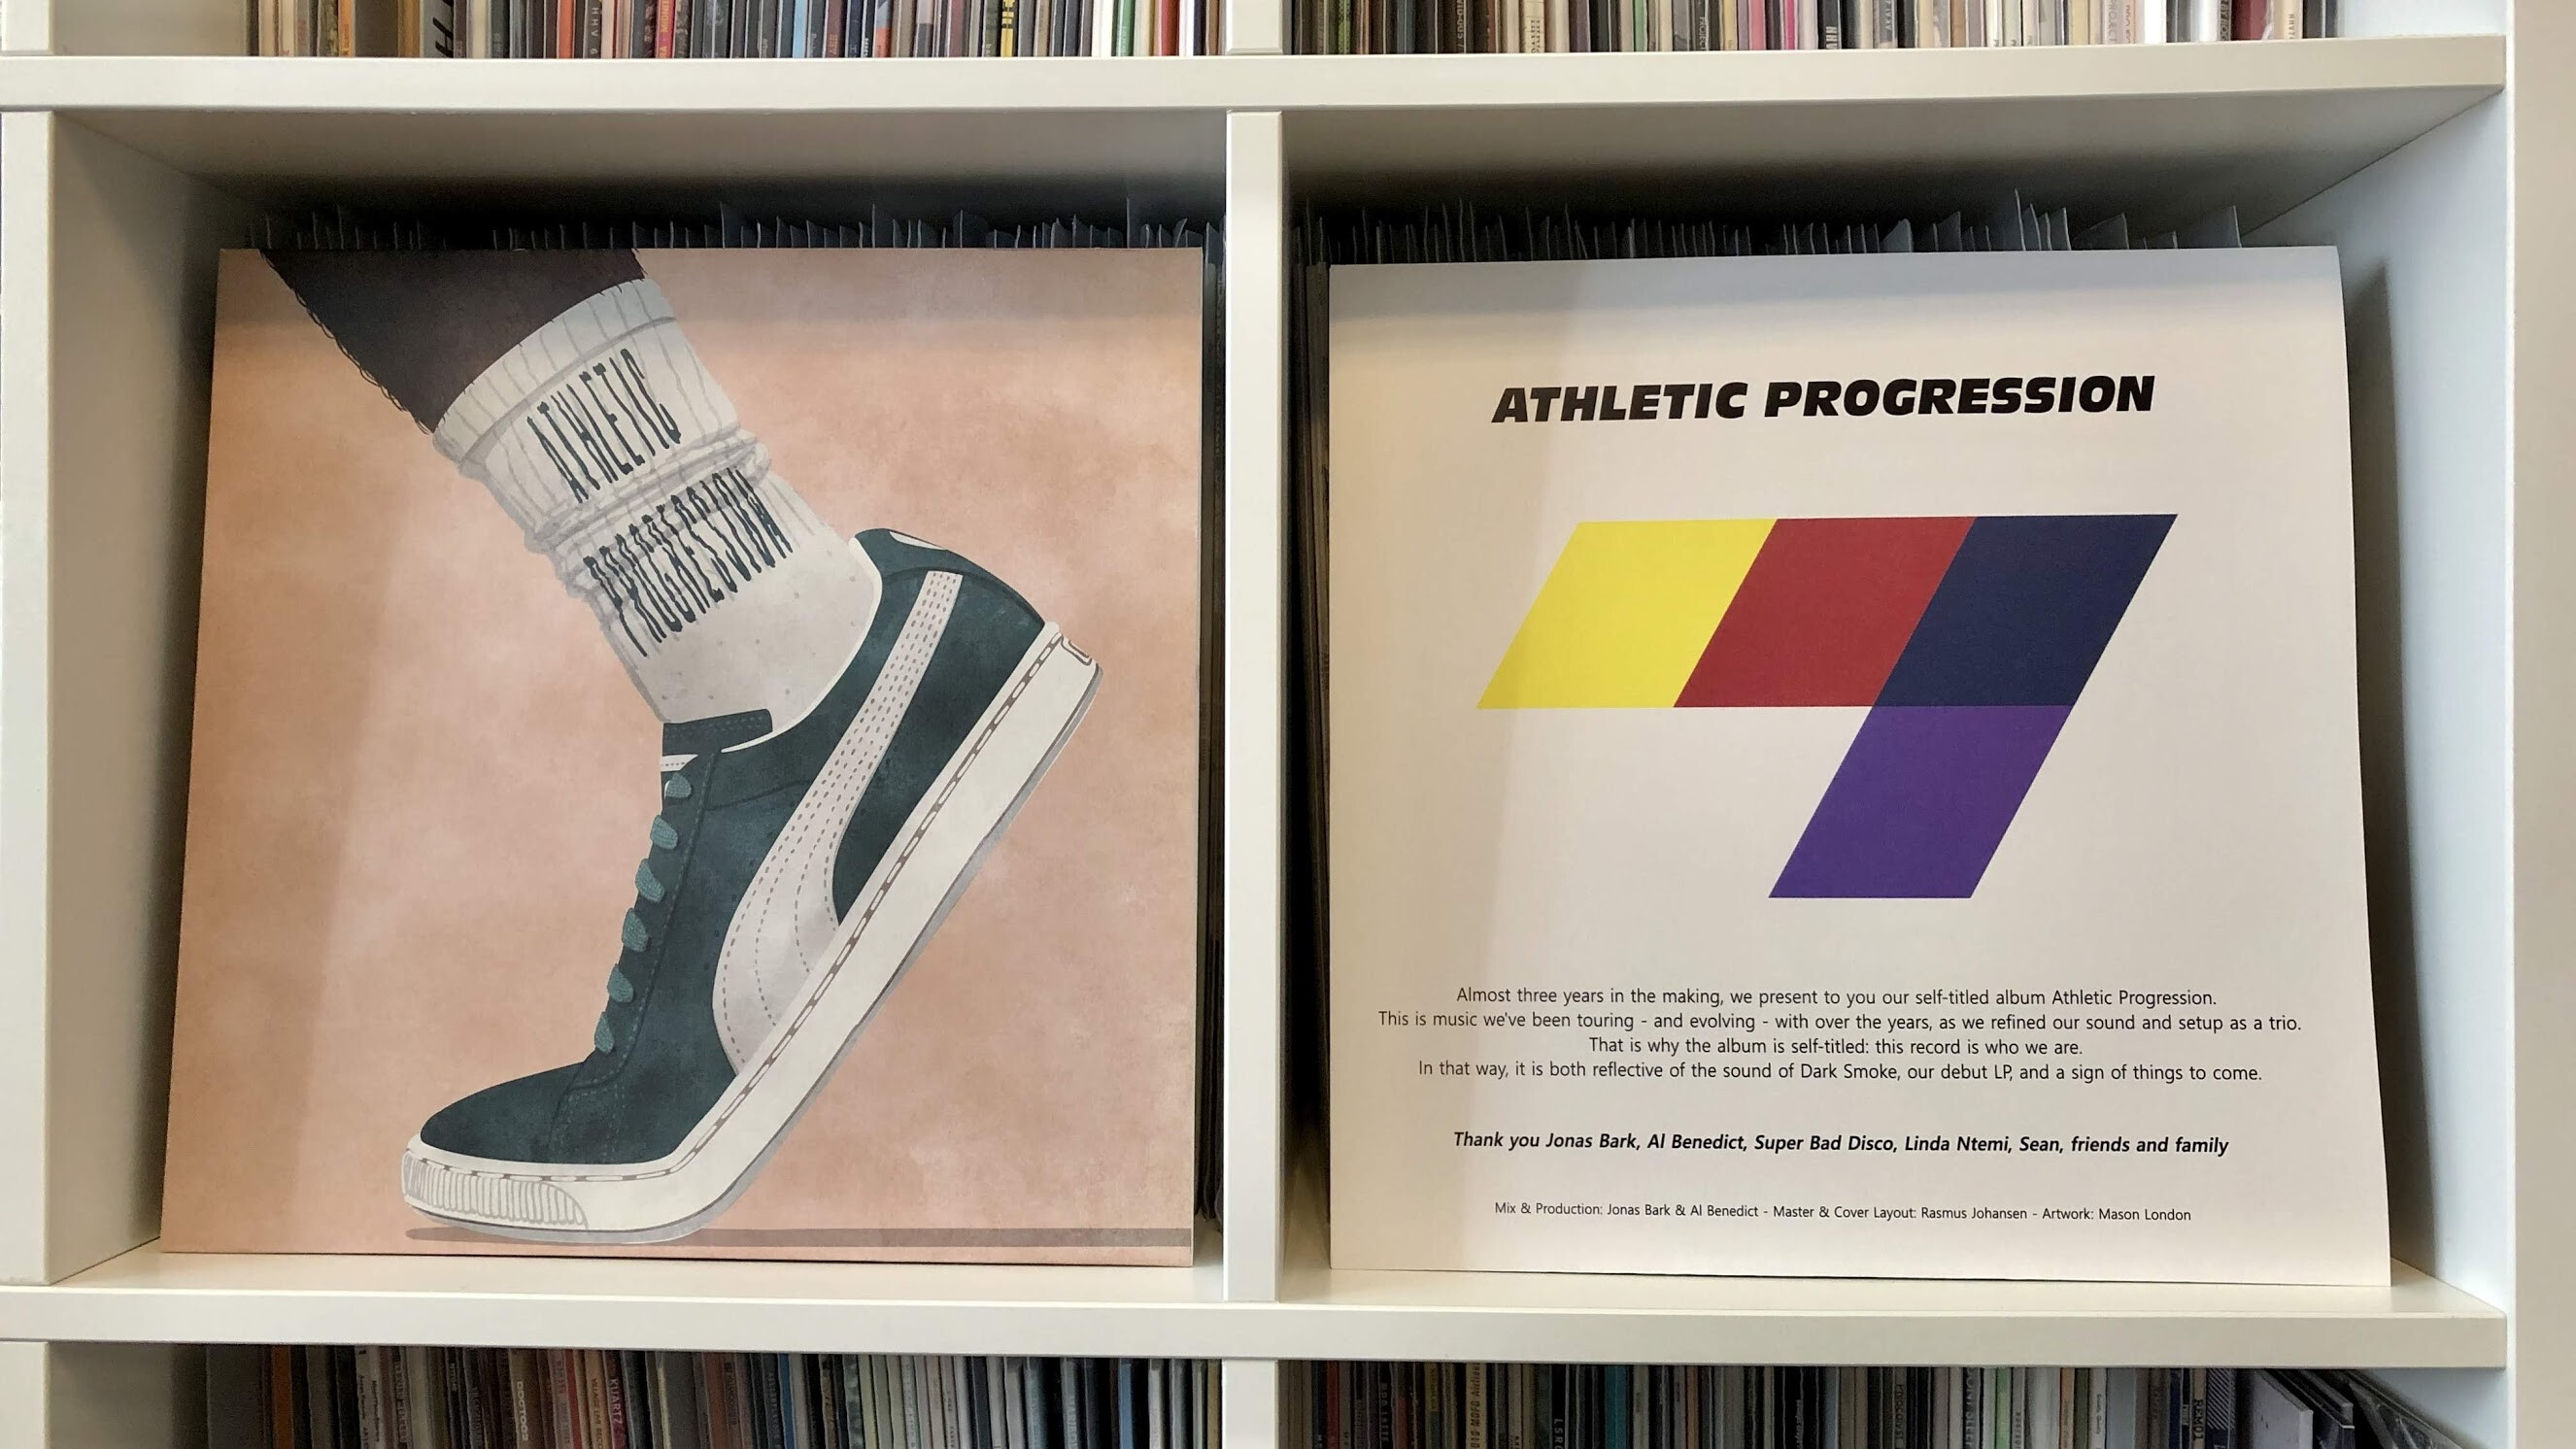 Athletic Progression (Super Bad Disco / HHV)